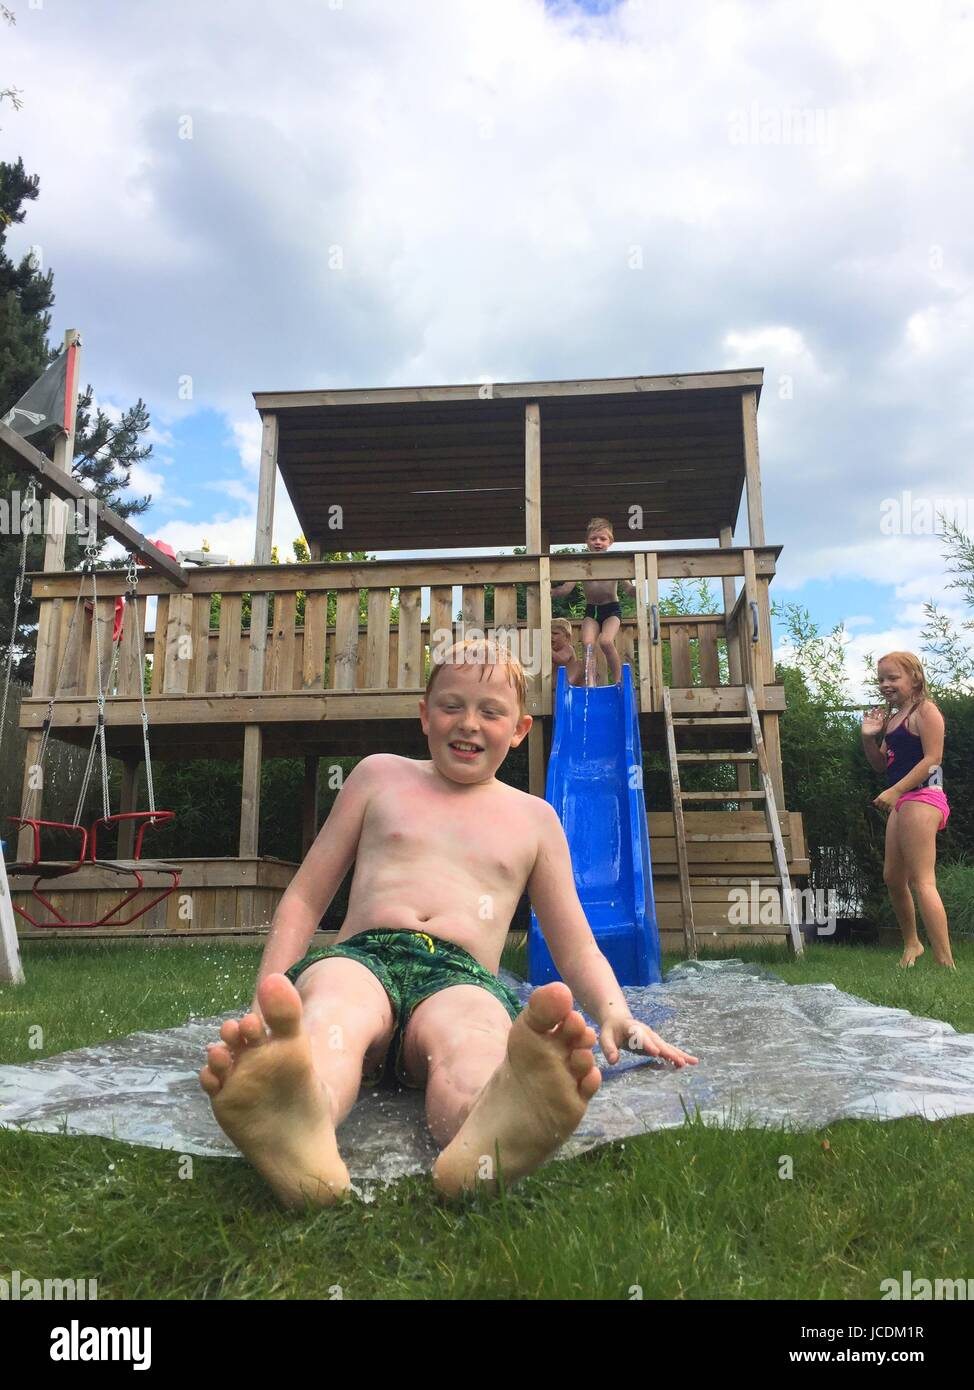 Children playing on a waterslide in the garden during summertime - Stock Image